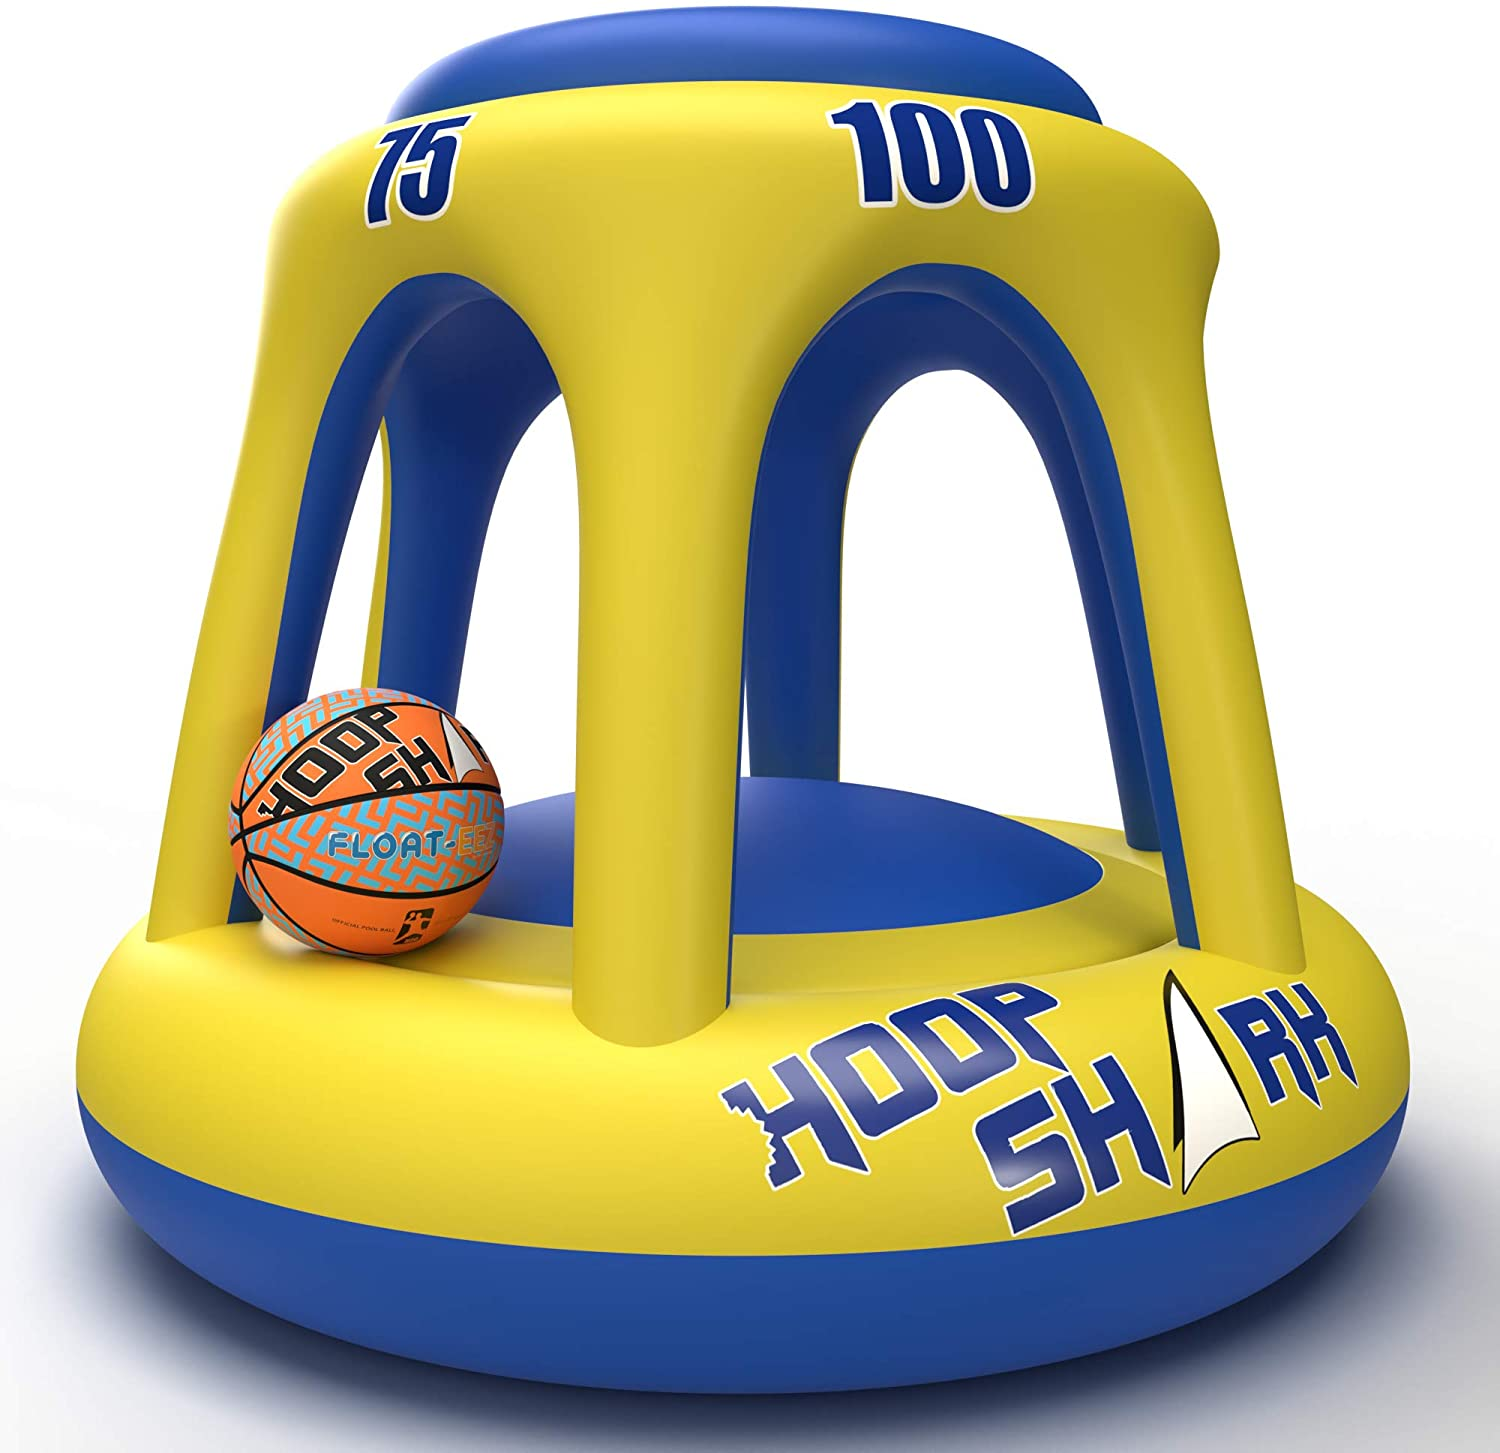 Hoop Shark Swimming Pool Basketball Hoop Set by FLOAT-EEZ - 2020 Edition - Inflatable Hoop with Ball Included - Perfect for Competitive Water Play and Trick Shots - Ultimate Summer Toy (Yellow)